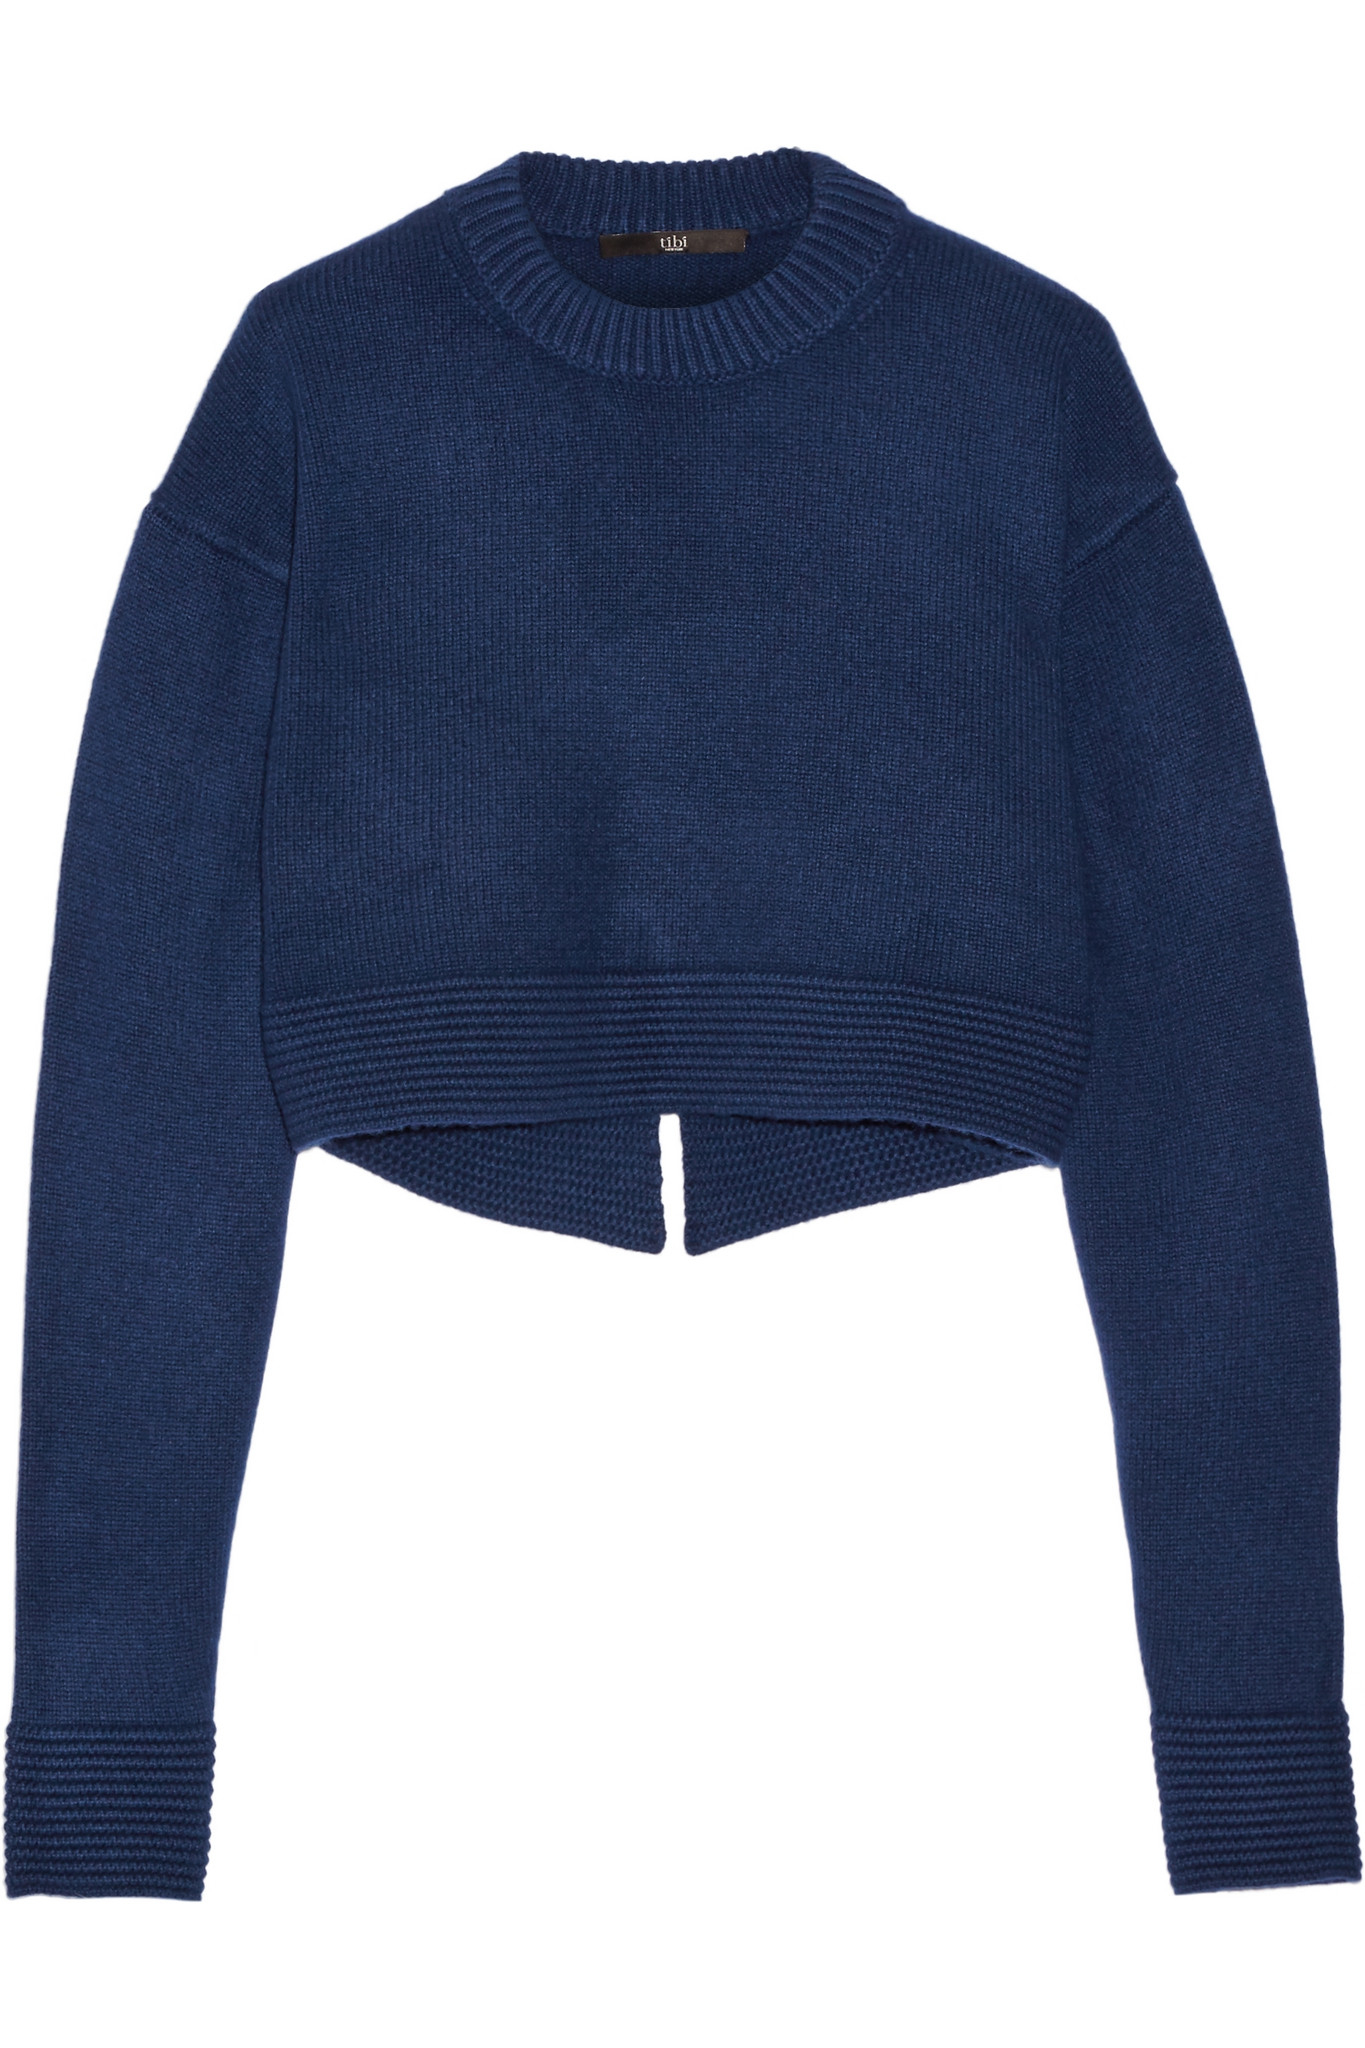 Tibi - Cropped Cashmere Sweater - Navy in Blue | Lyst